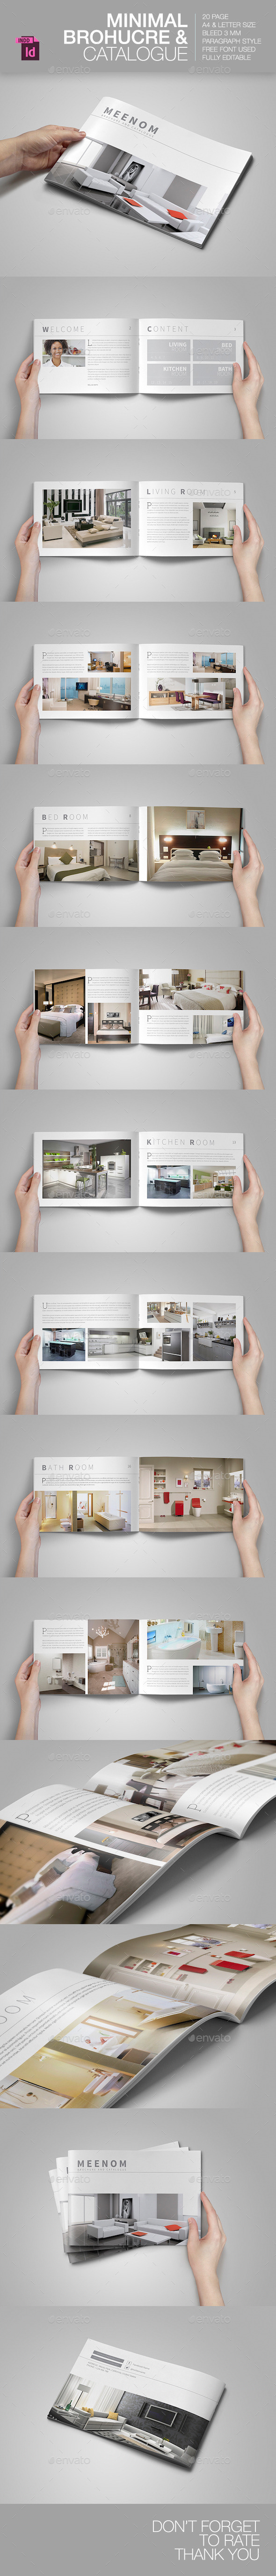 Minimal Brochure & Catalogue - Brochures Print Templates